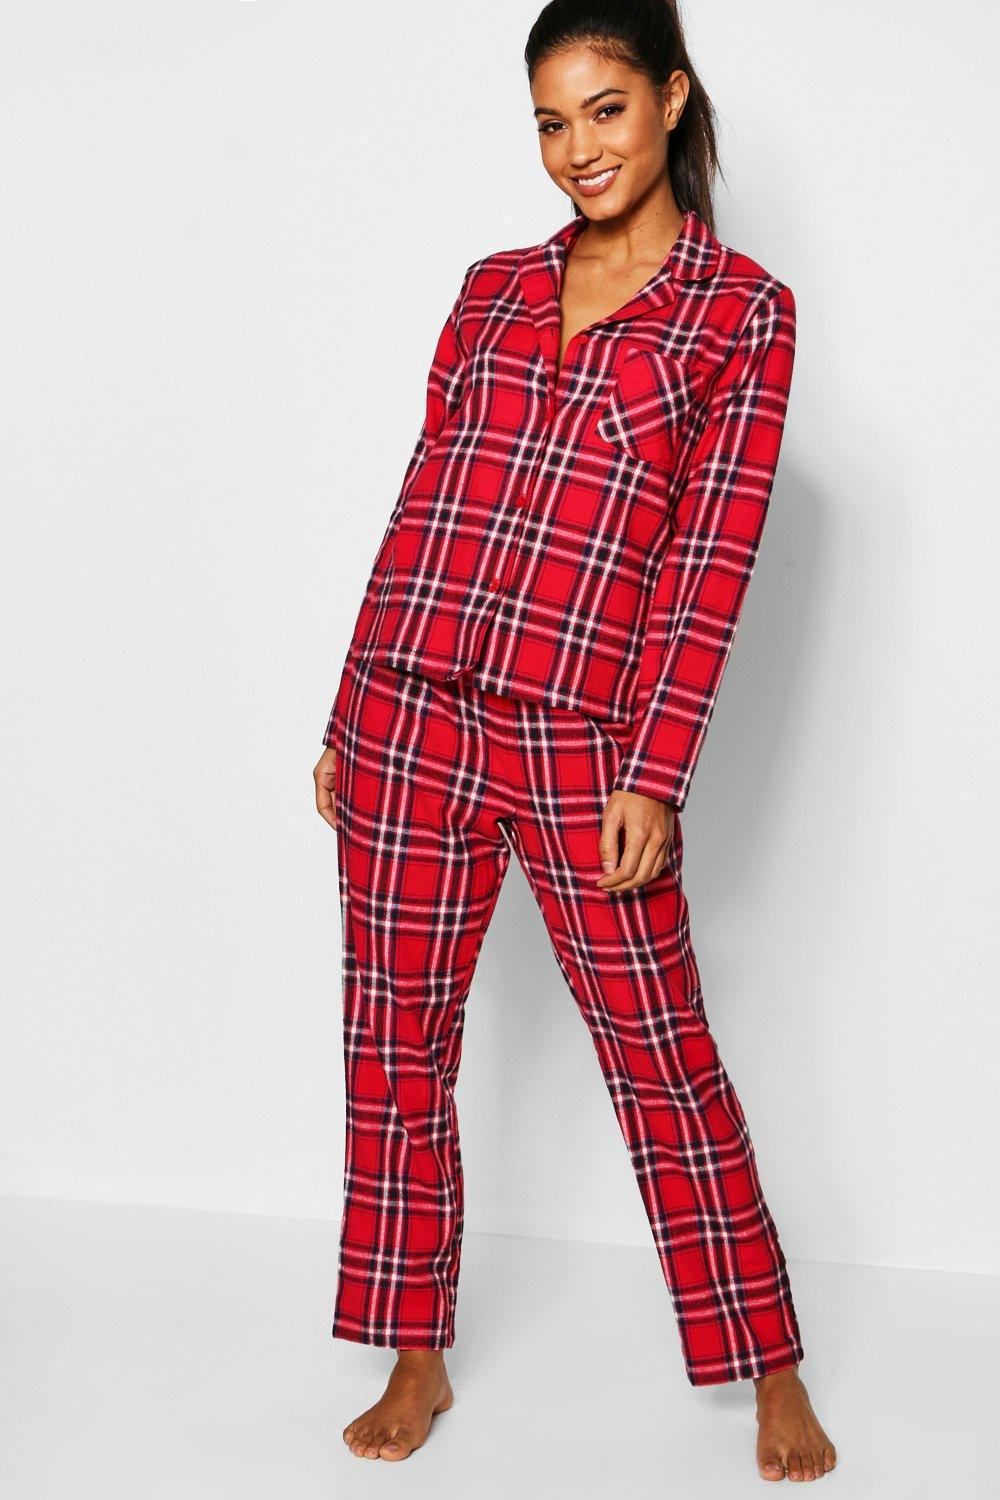 d391780e4c Lyst - Boohoo Red Check Brushed Flannel Button Through Pj Set in Red